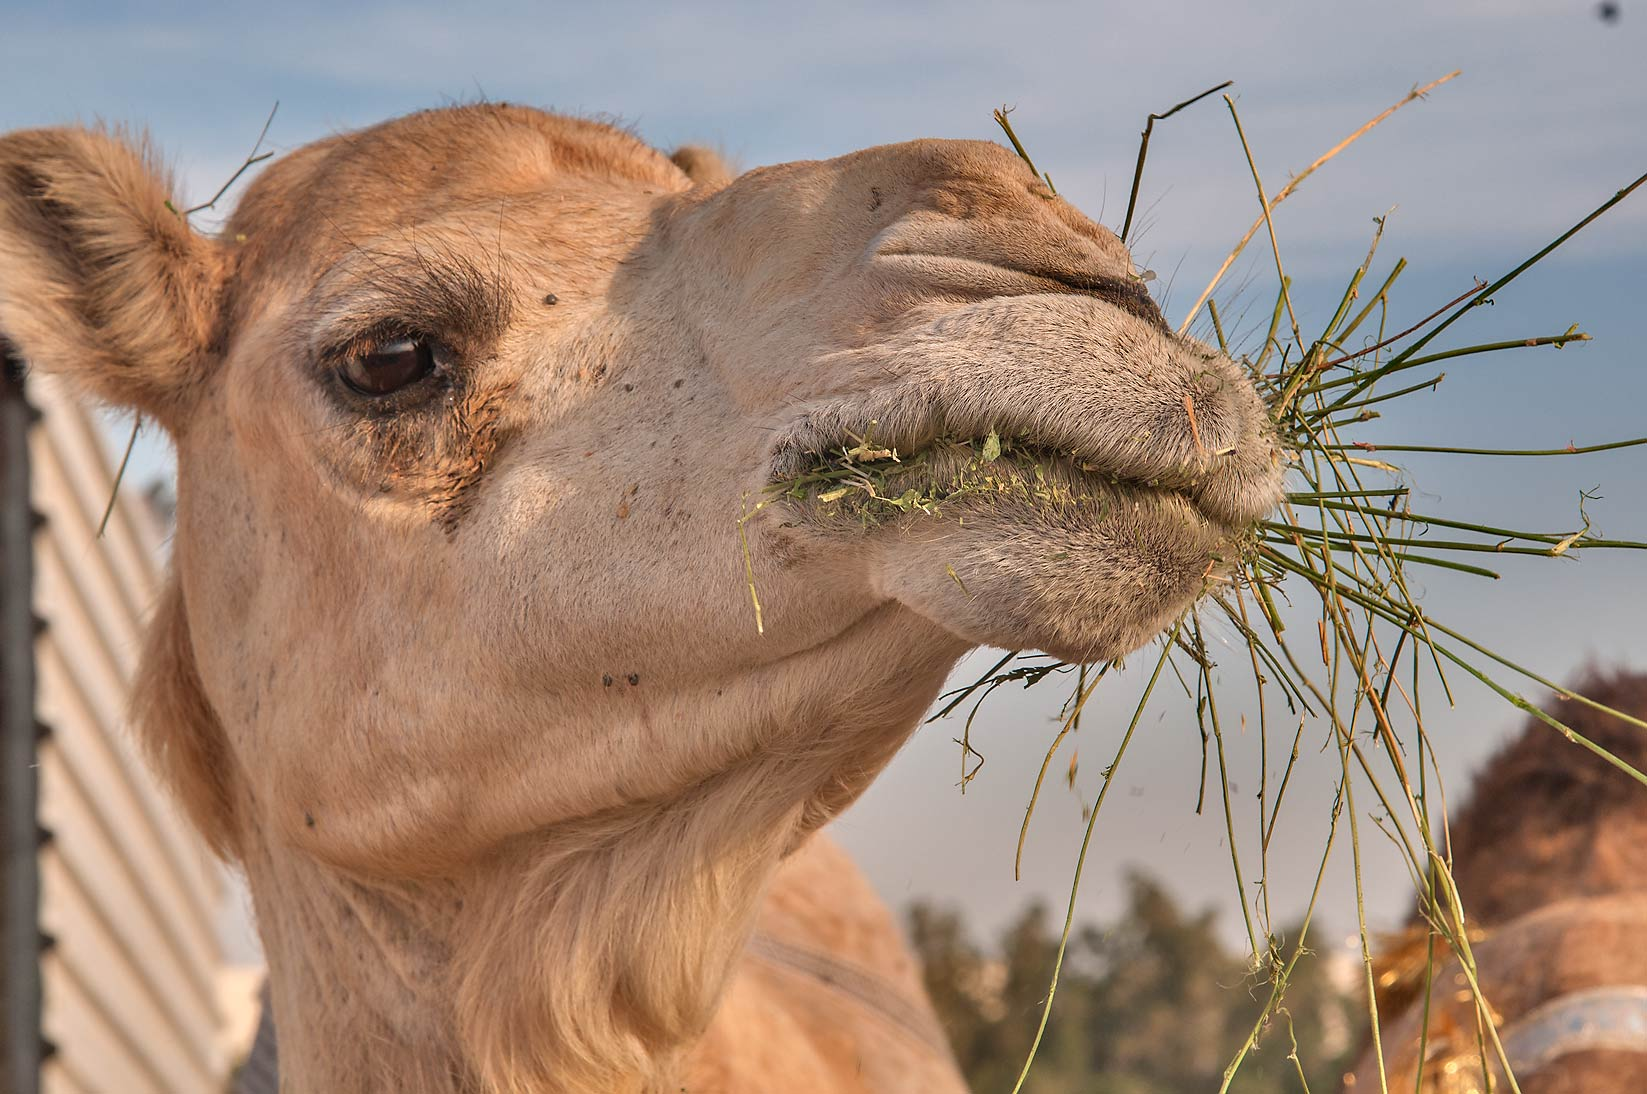 Camel with hay in its mouth in Livestock Market, Wholesale Markets area. Doha, Qatar